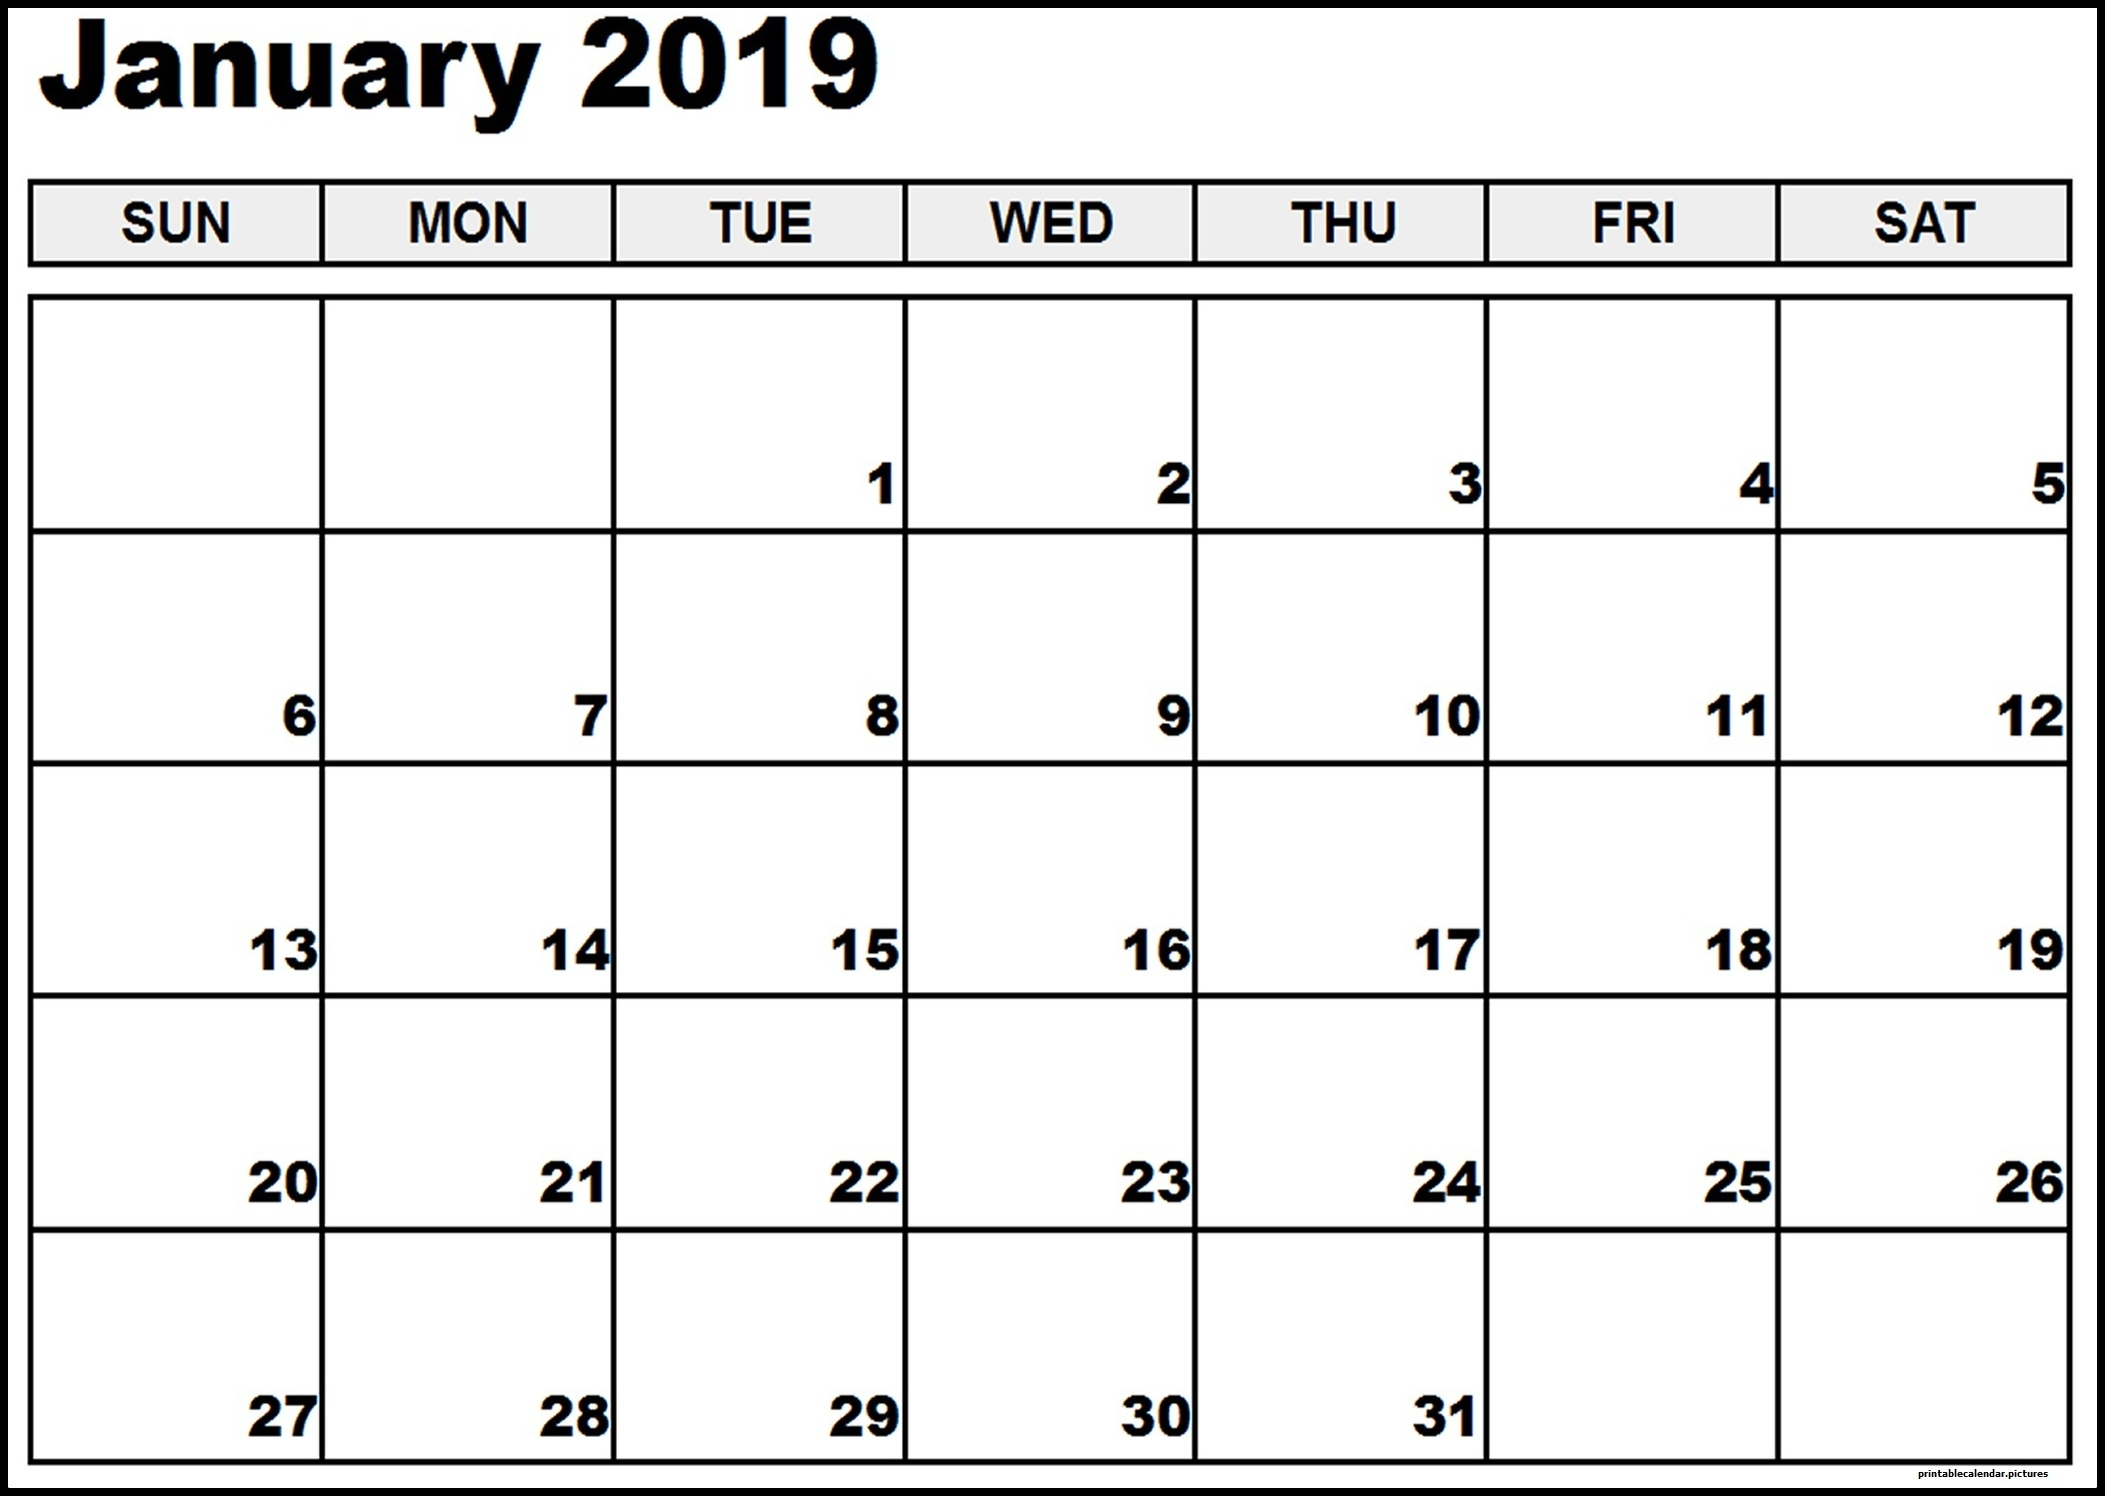 January 2019 Calendar Printable PDF Template Free